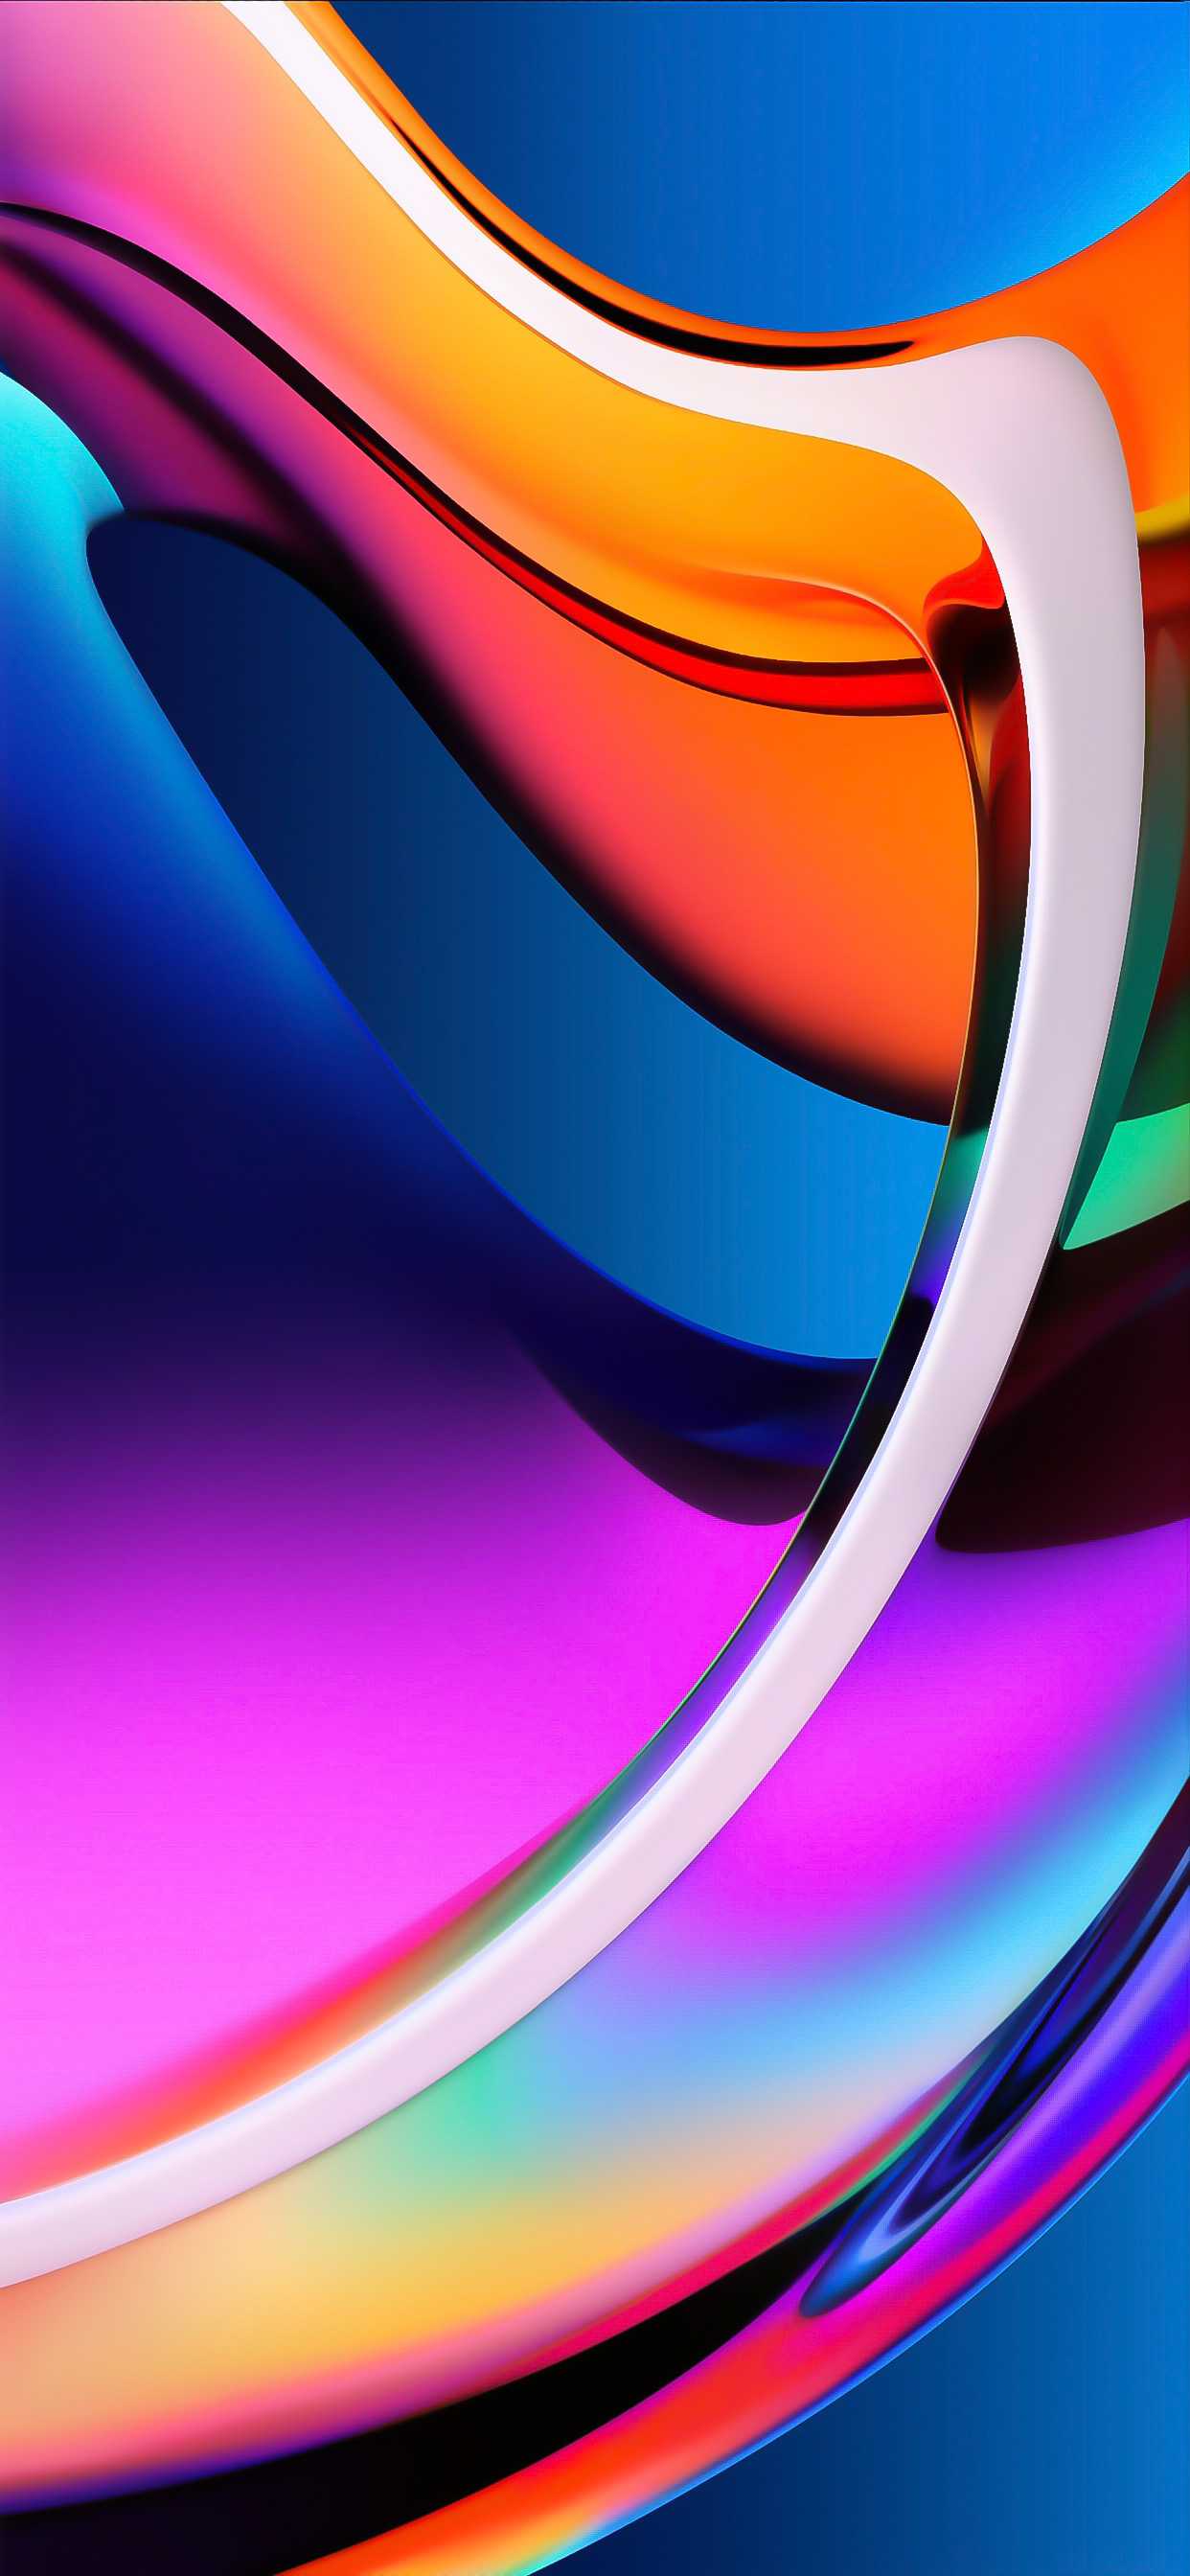 New 2020 Imac Wallpapers For Desktop And Iphone